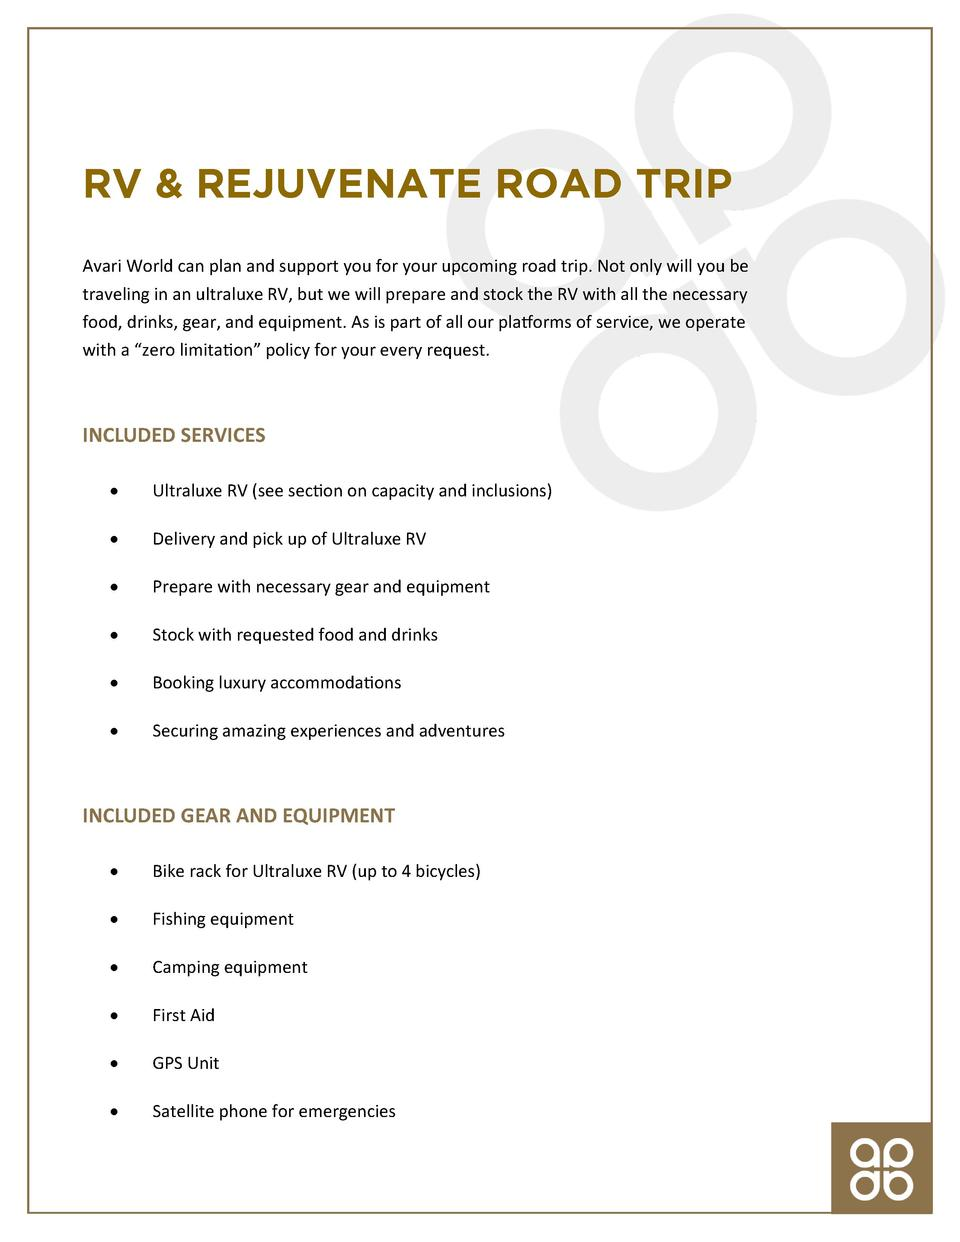 RV   REJUVENATE ROAD TRIP Avari World can plan and support you for your upcoming road trip. Not only will you be traveling...